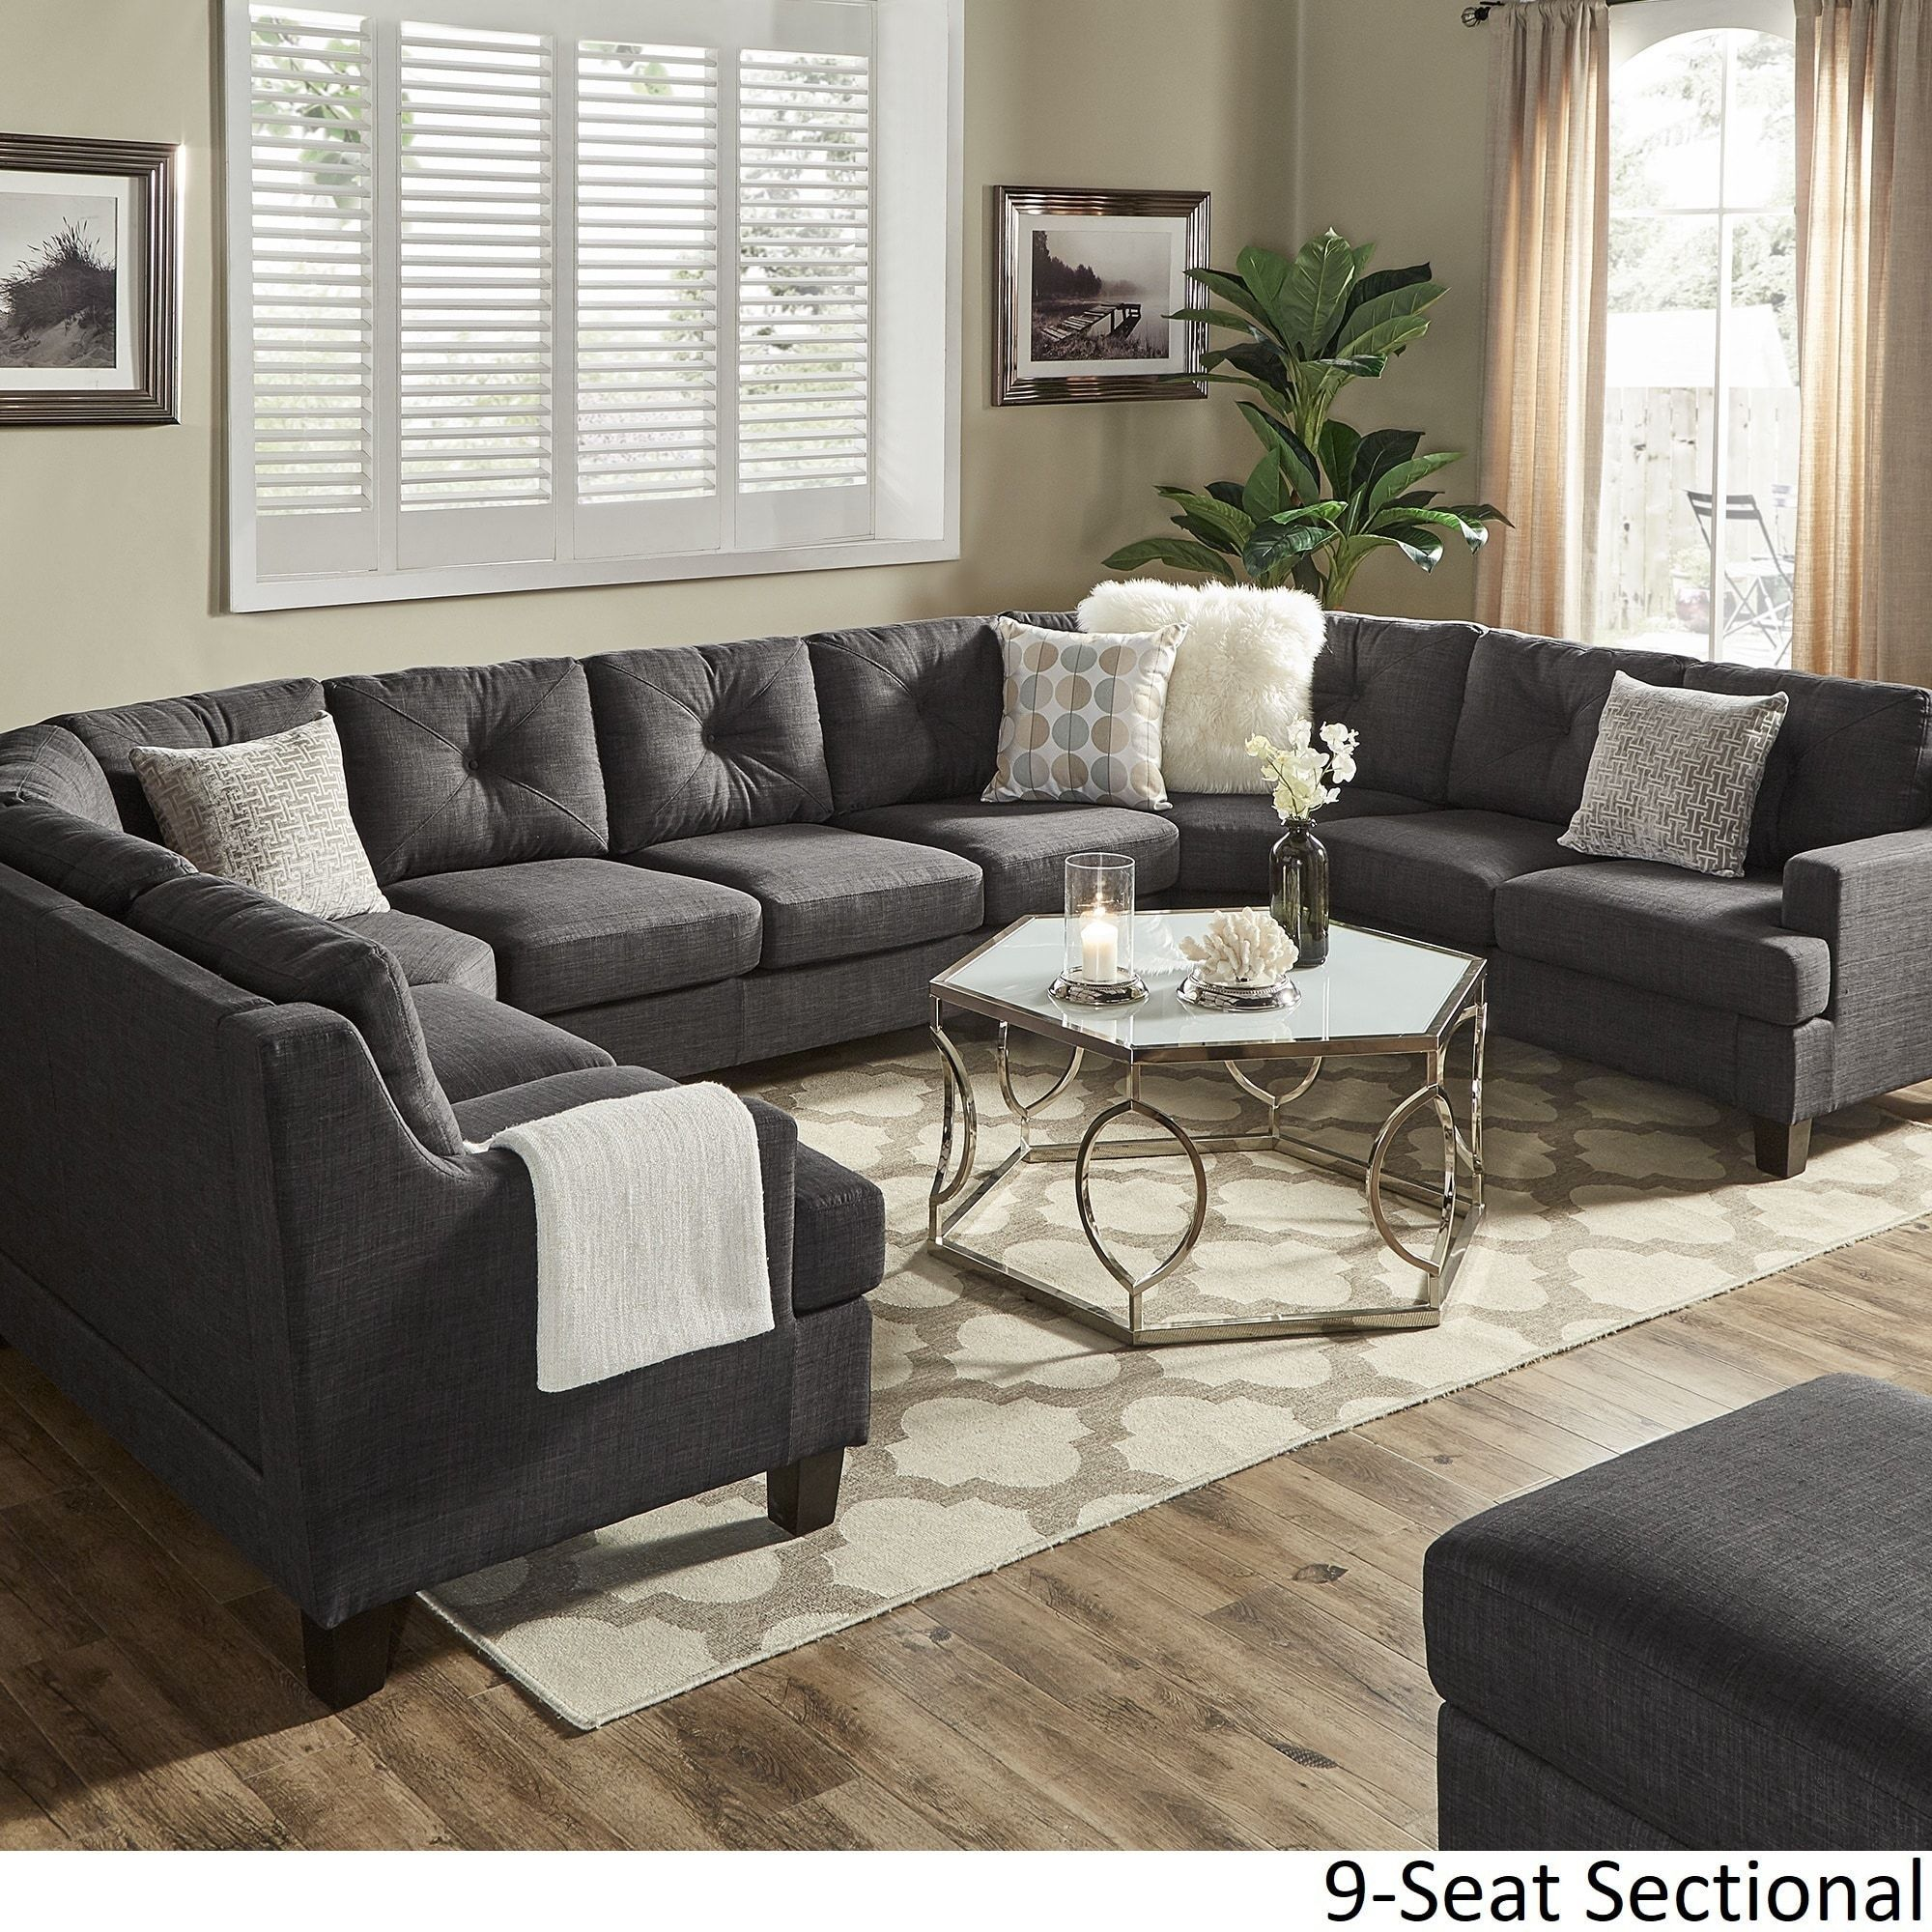 To the administration of the website, we need a show and tell section for people who just want to show off there finished projects. Our Best Living Room Furniture Deals | Gray sectional ...